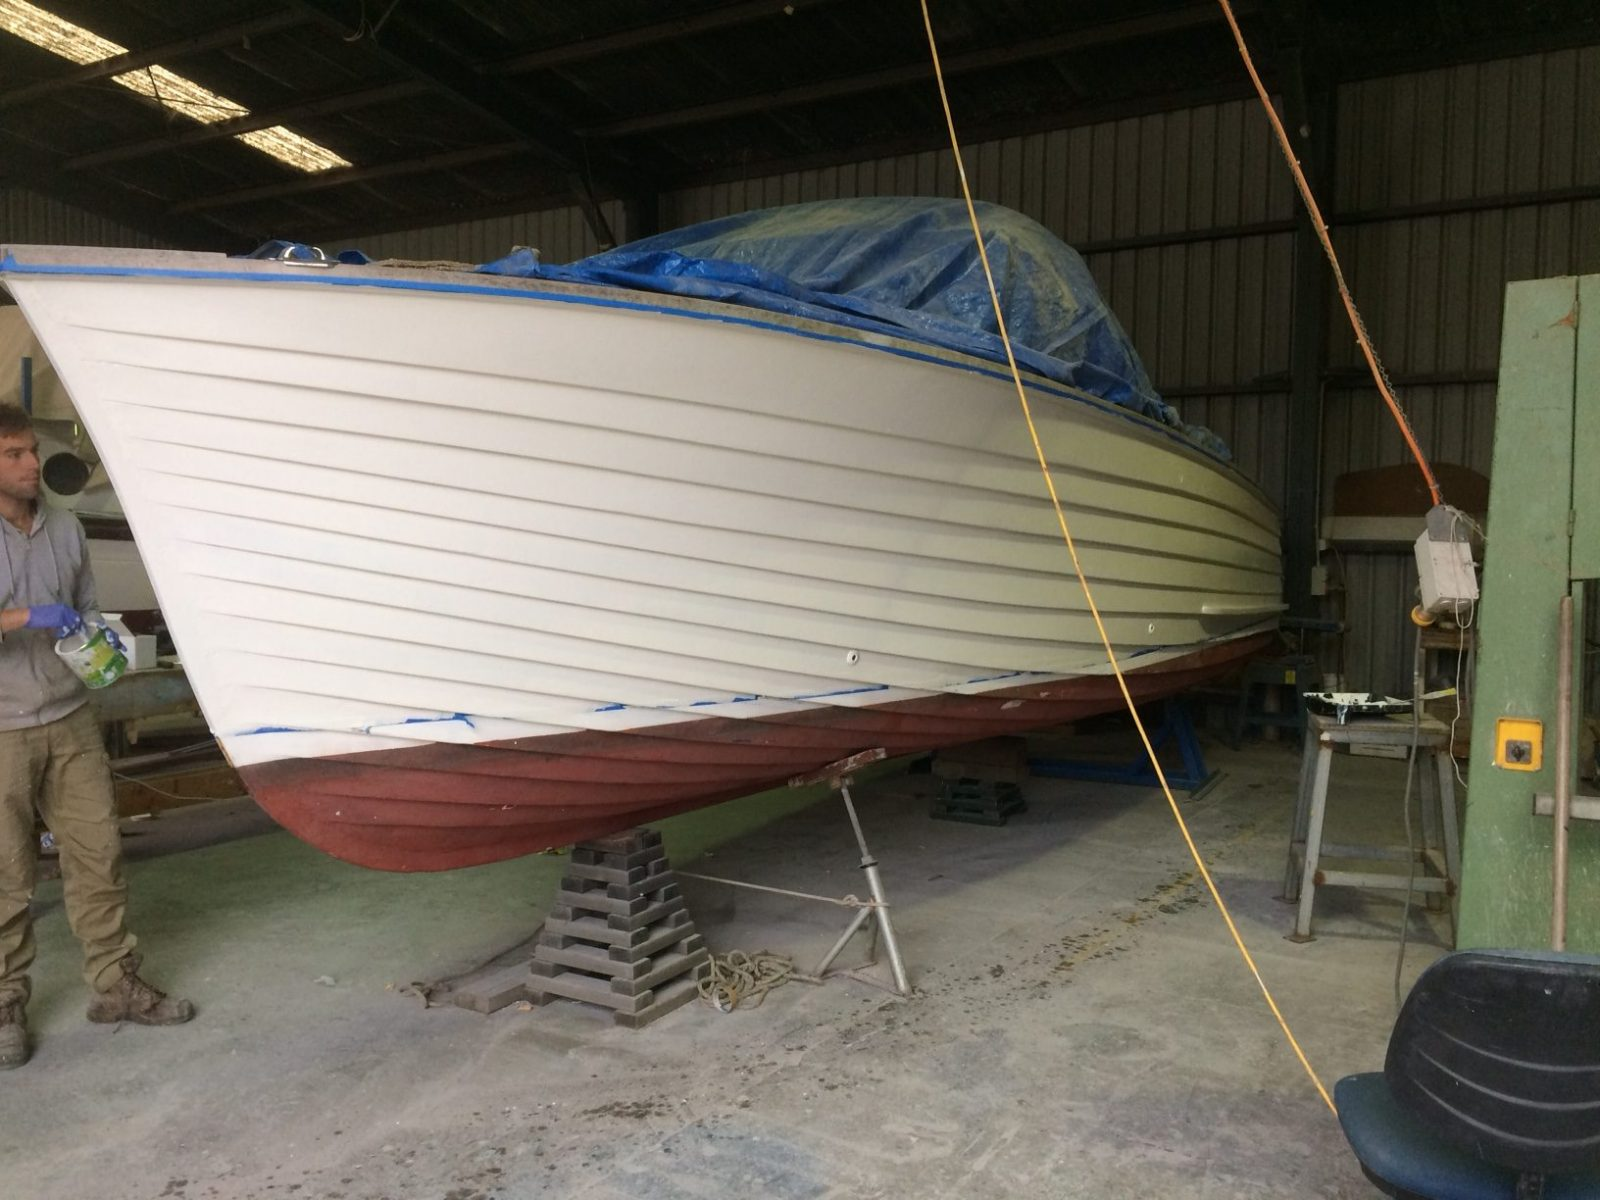 'B. Bommel' Classic Powerboat repaint - undercoat completed